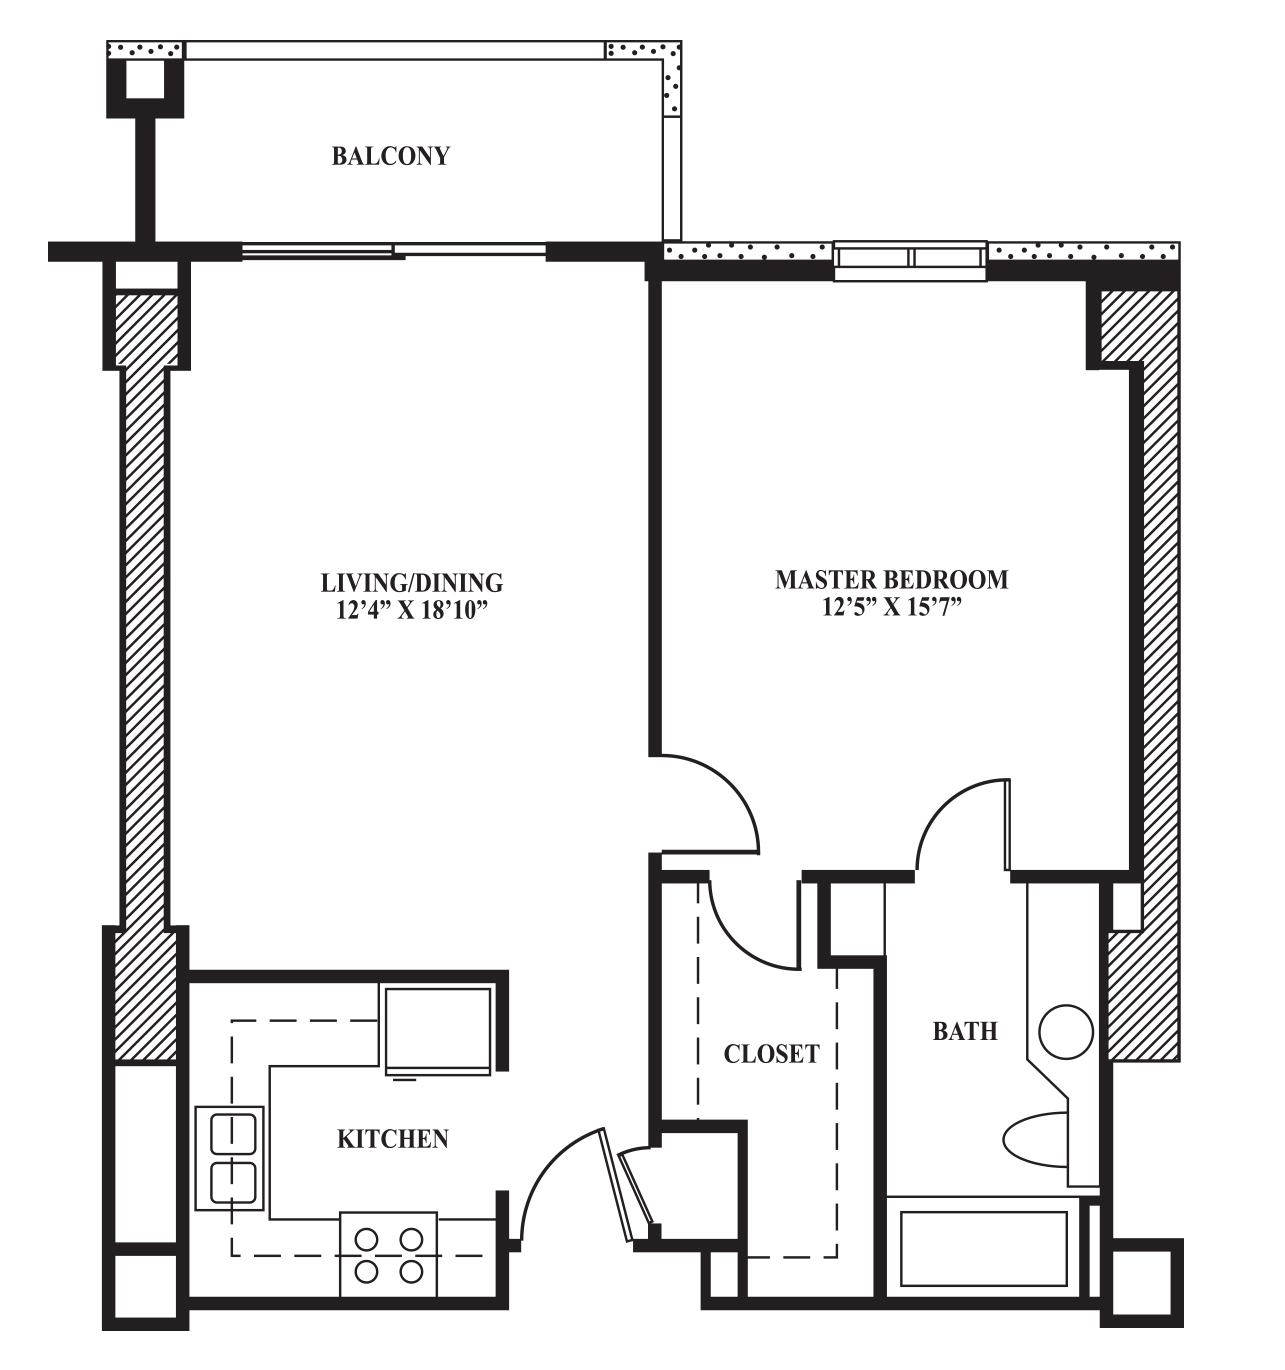 Floor plan a 688 sq ft the towers on park lane for 10 x 18 square feet